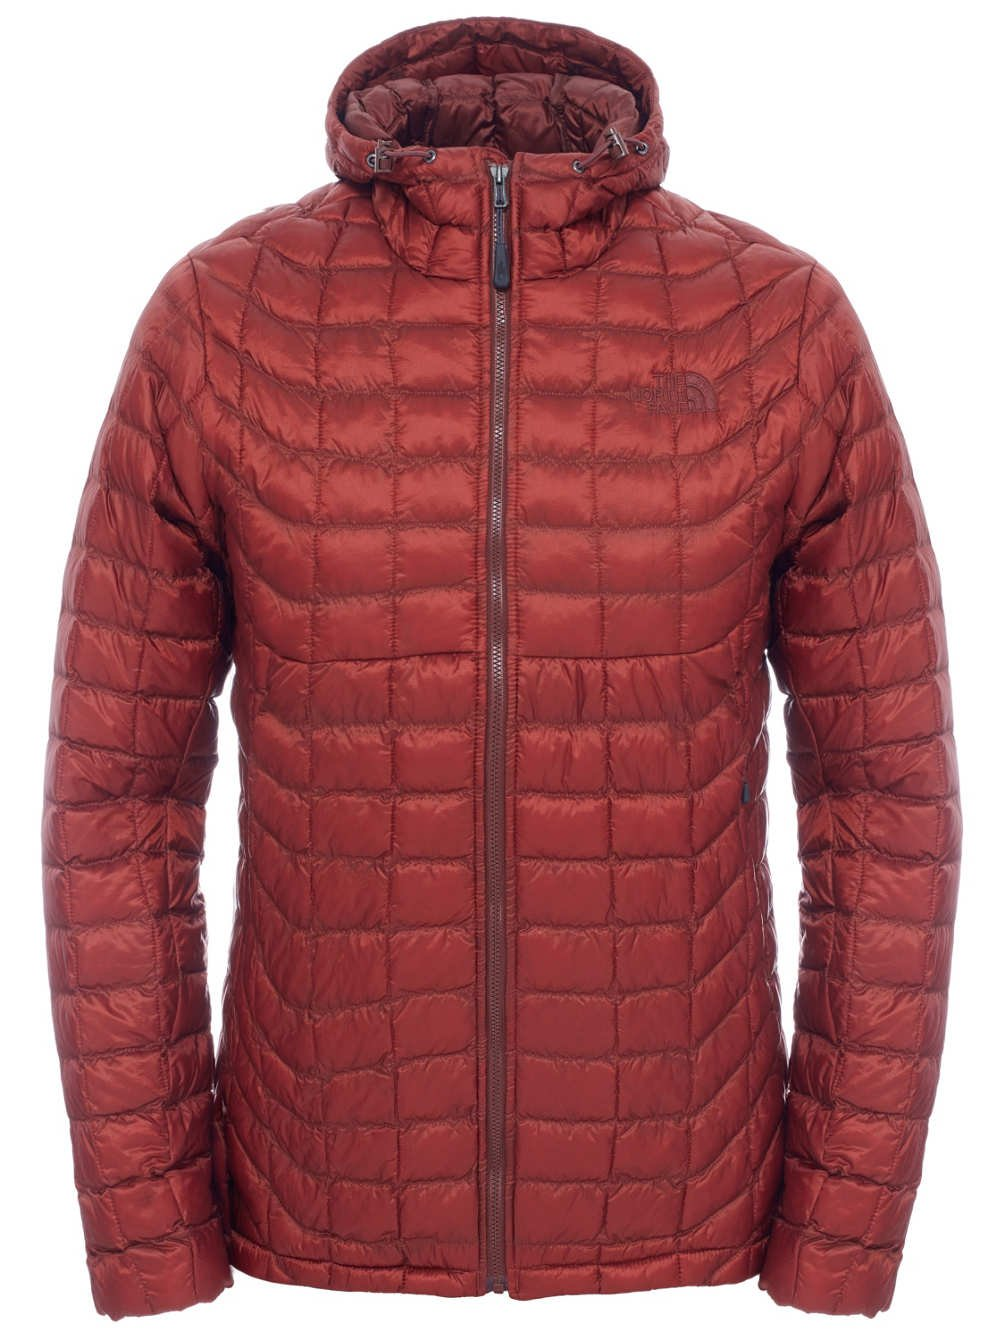 The North Face?-?Men's Down Jacket Hoodie